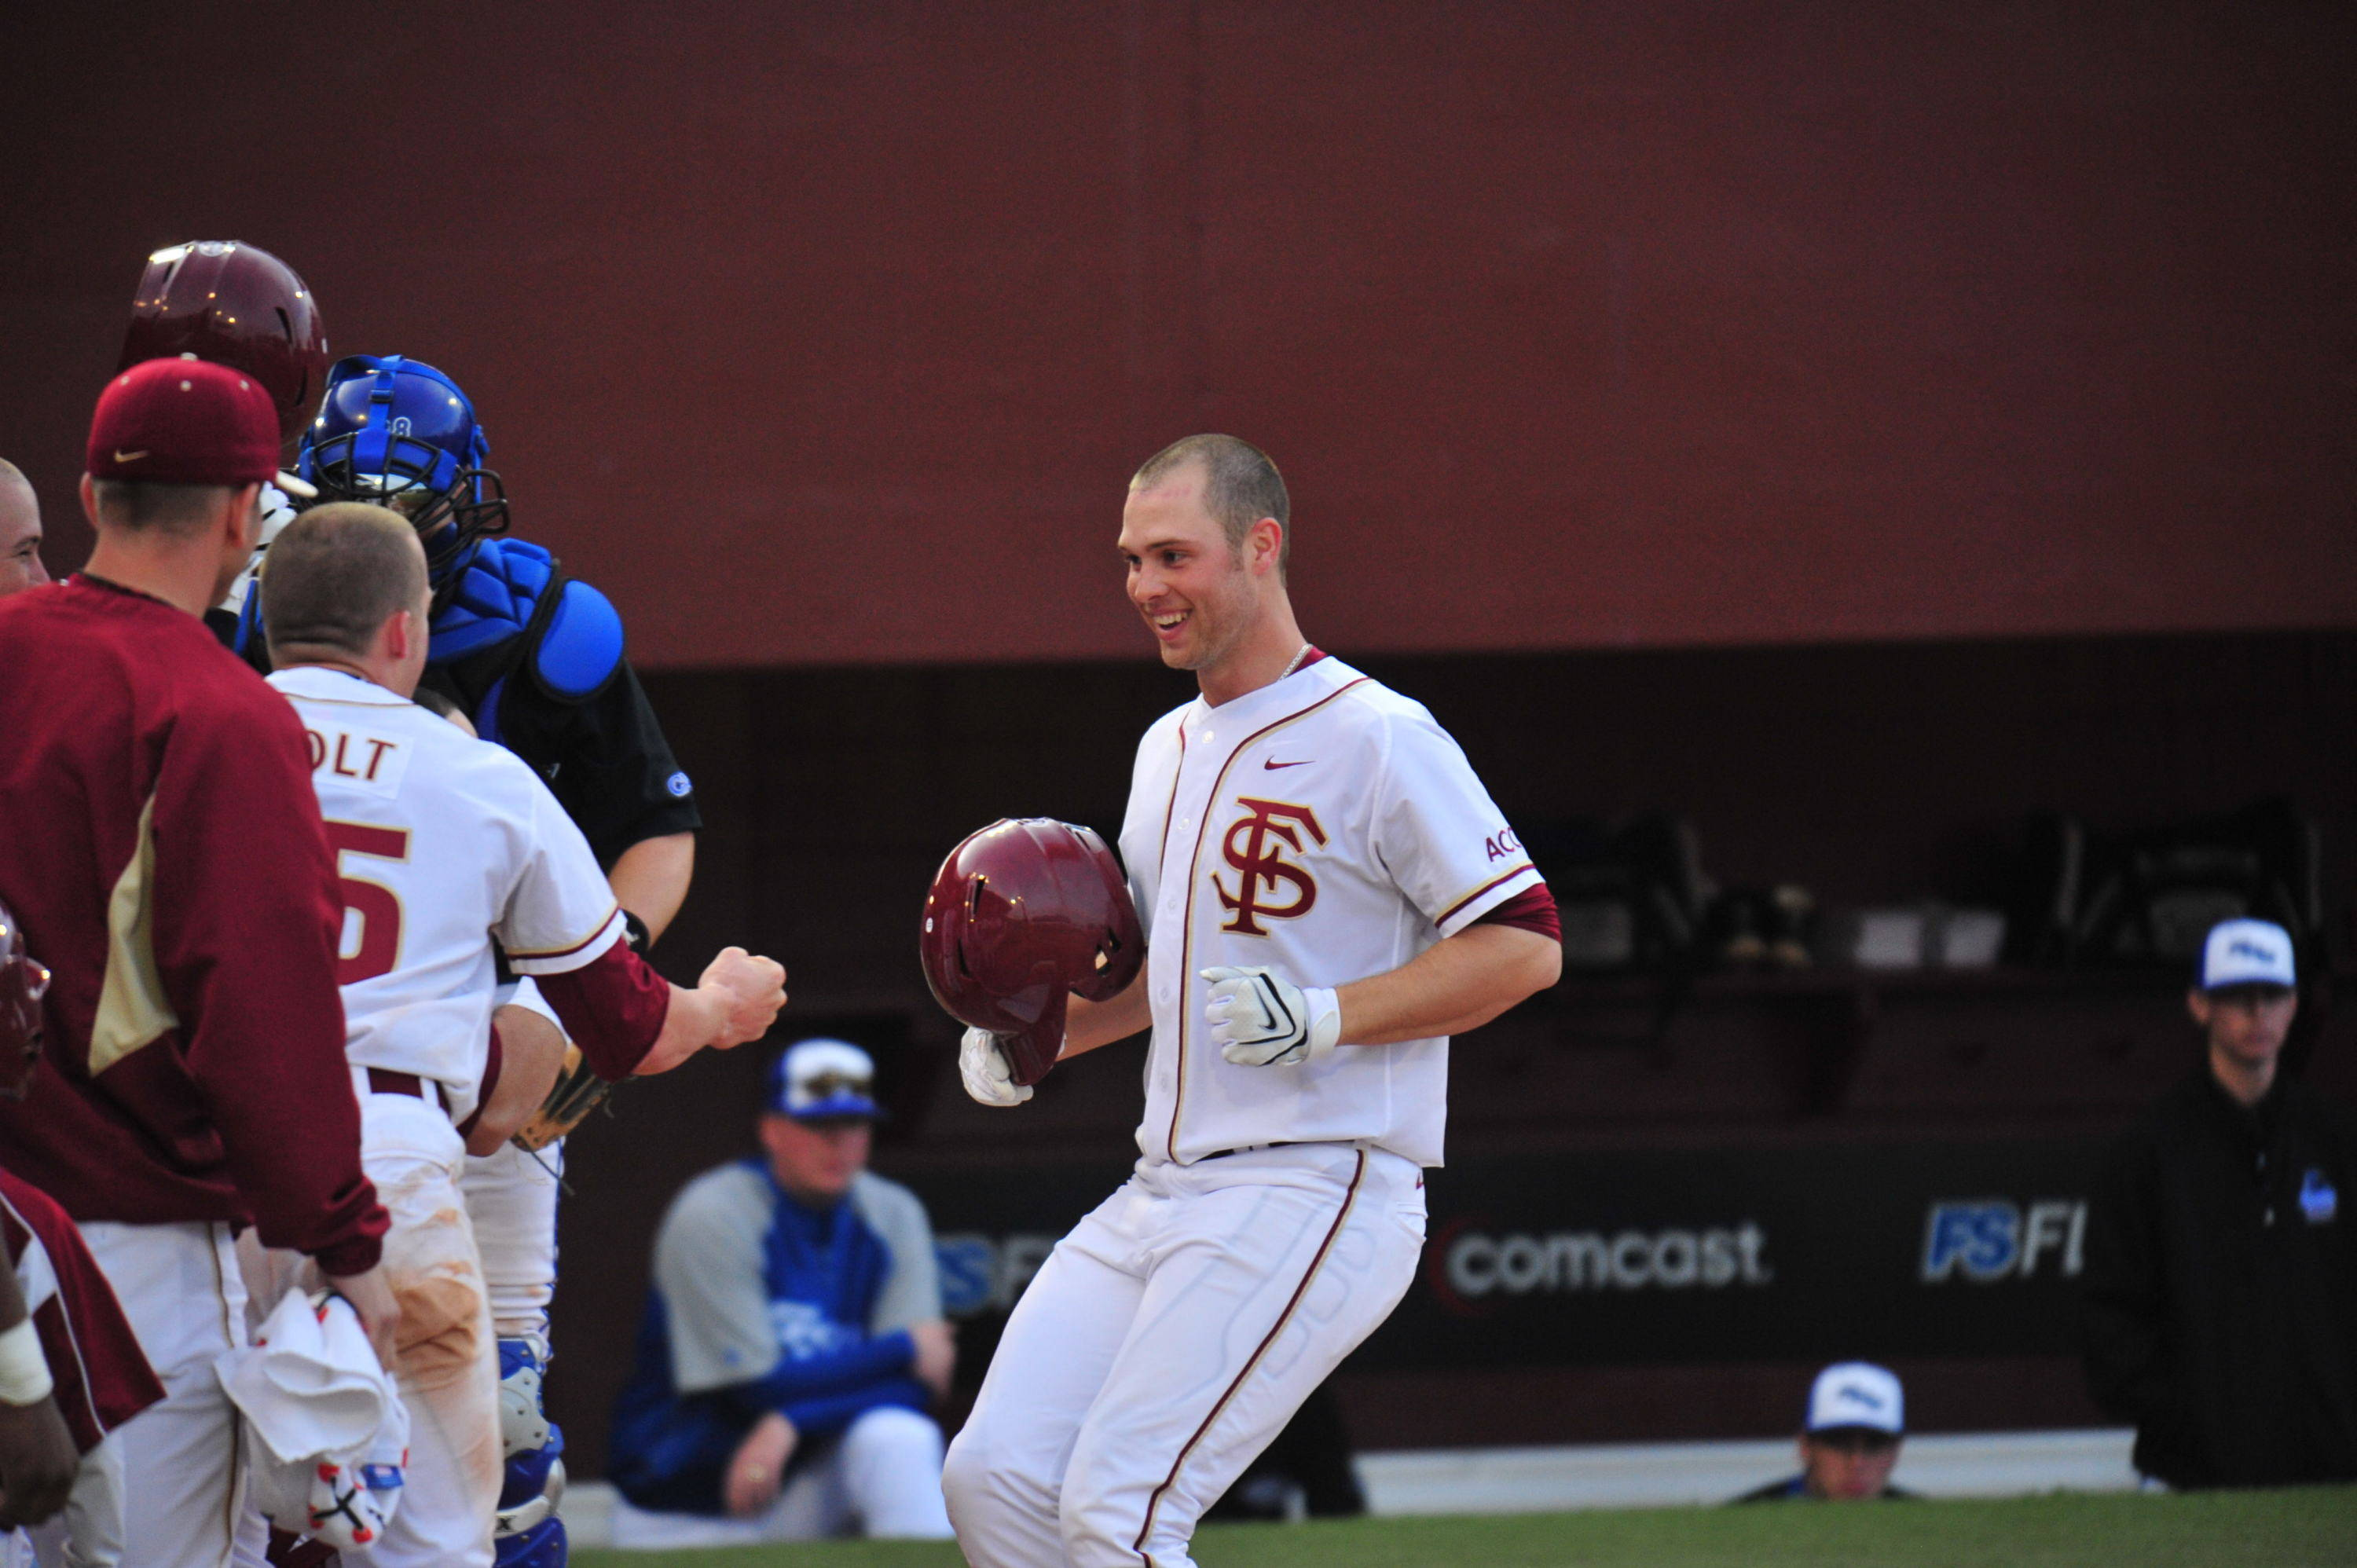 Mike McGee celebrates with teammates at home plate after going yard for the first Florida State home run of the season.